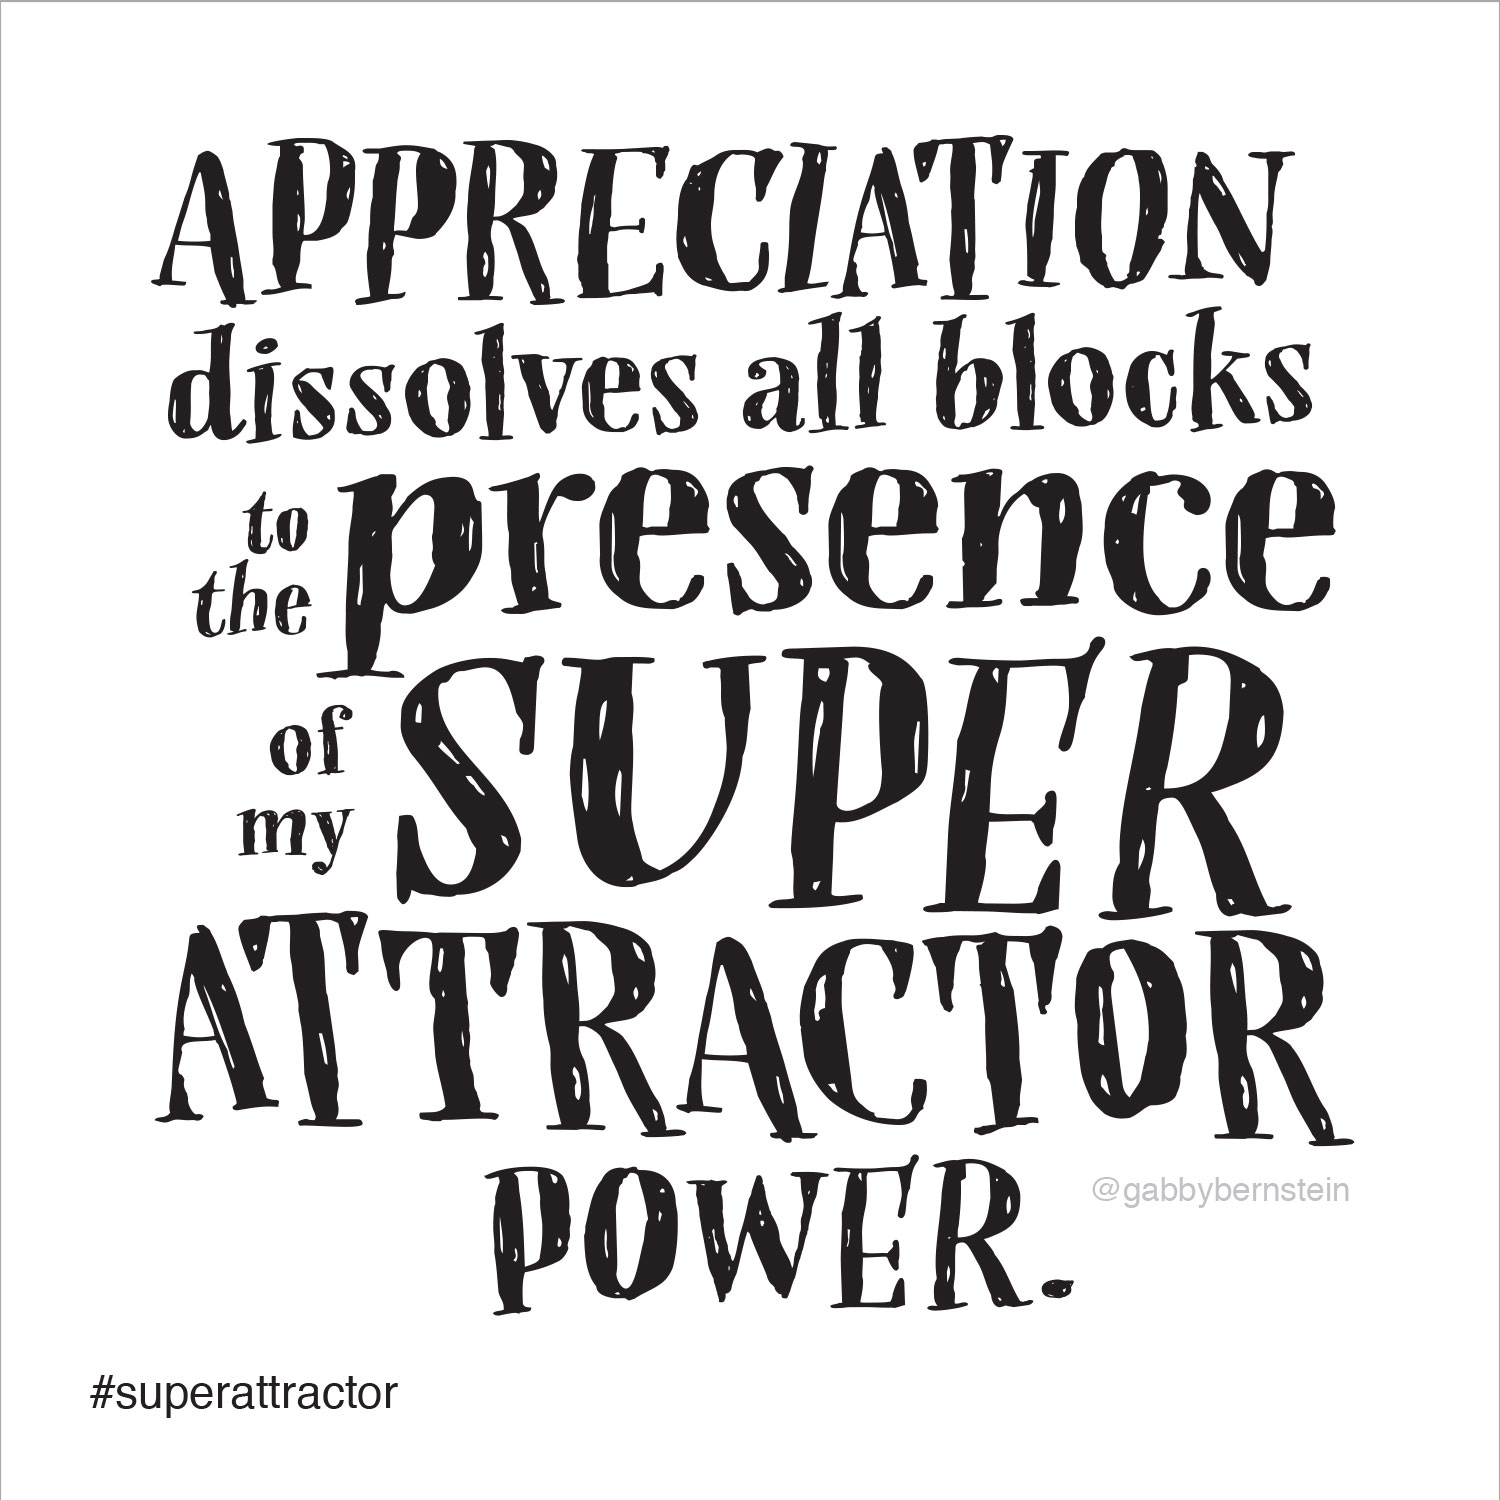 Appreciation dissolves all blocks to the presence of my Super Attractor power | Gabby Bernstein